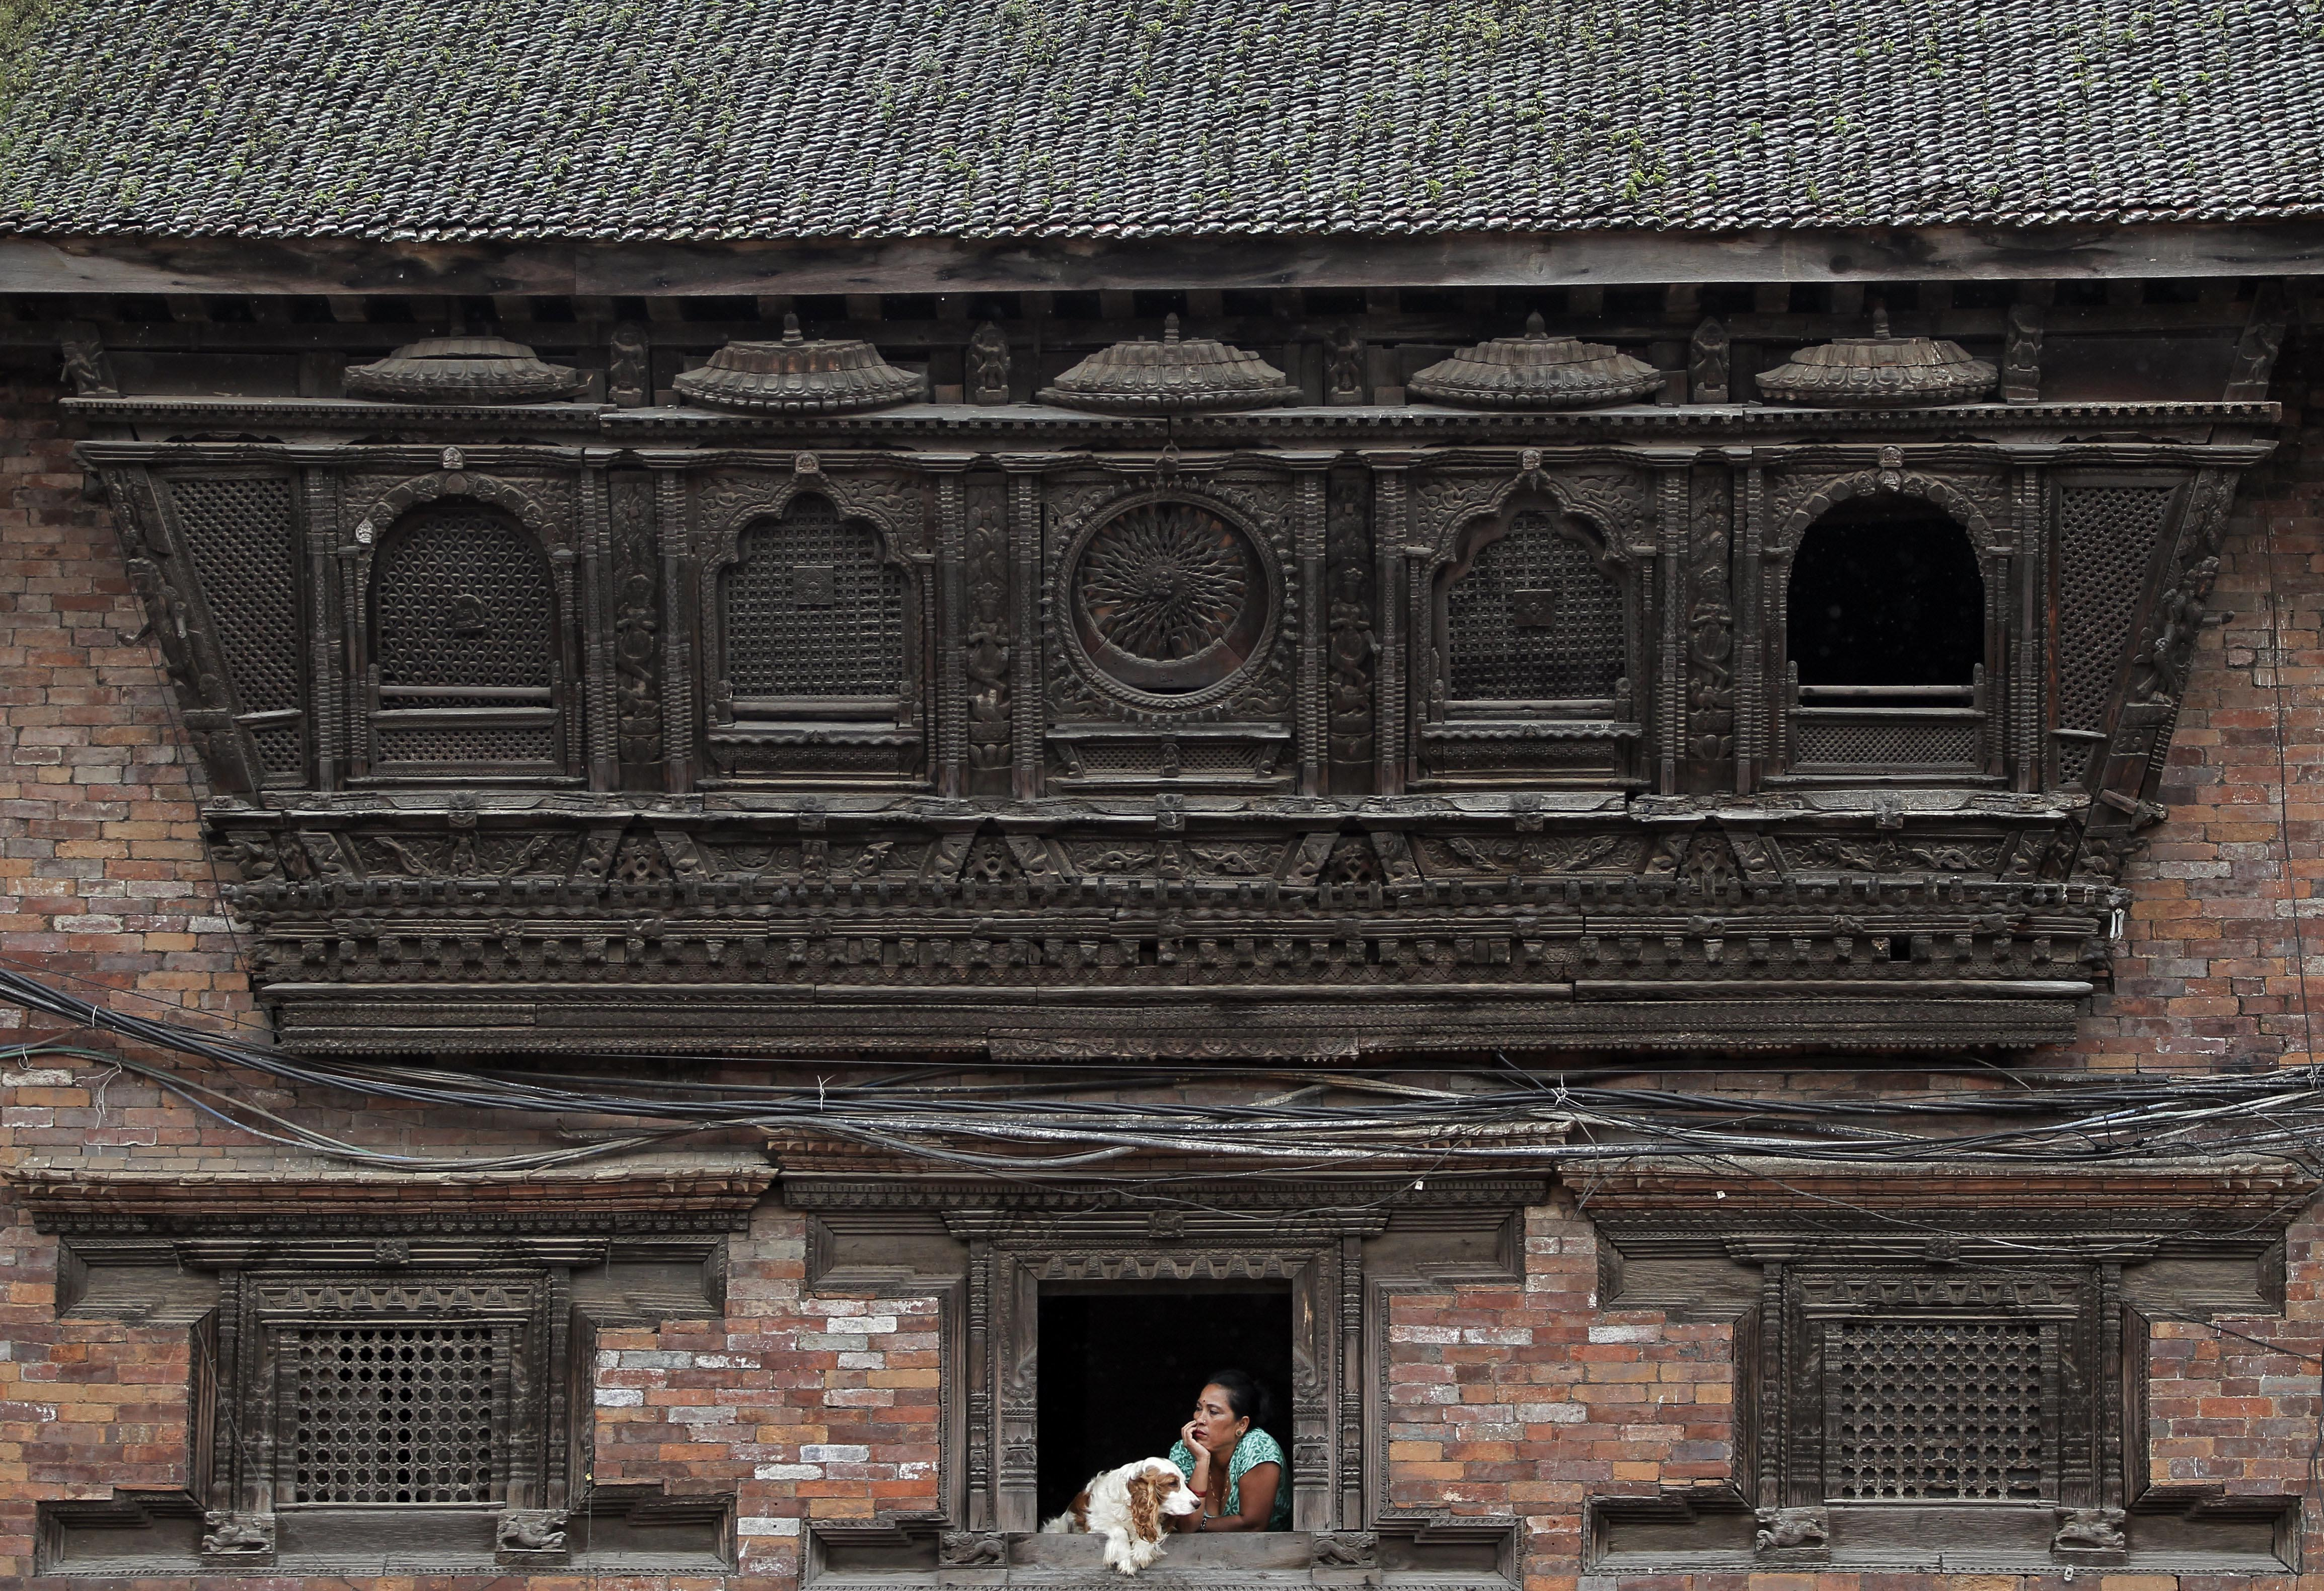 A Nepali woman sits with her dog and watches outside from an artistically crafted wooden window in Bhaktapur, Nepal, Monday, Sept. 12, 2016. Bhaktapur, also known as the city of devotees, is an ancient city popular for its traditional architectural buildings, temples and unique festivals. Photo: AP